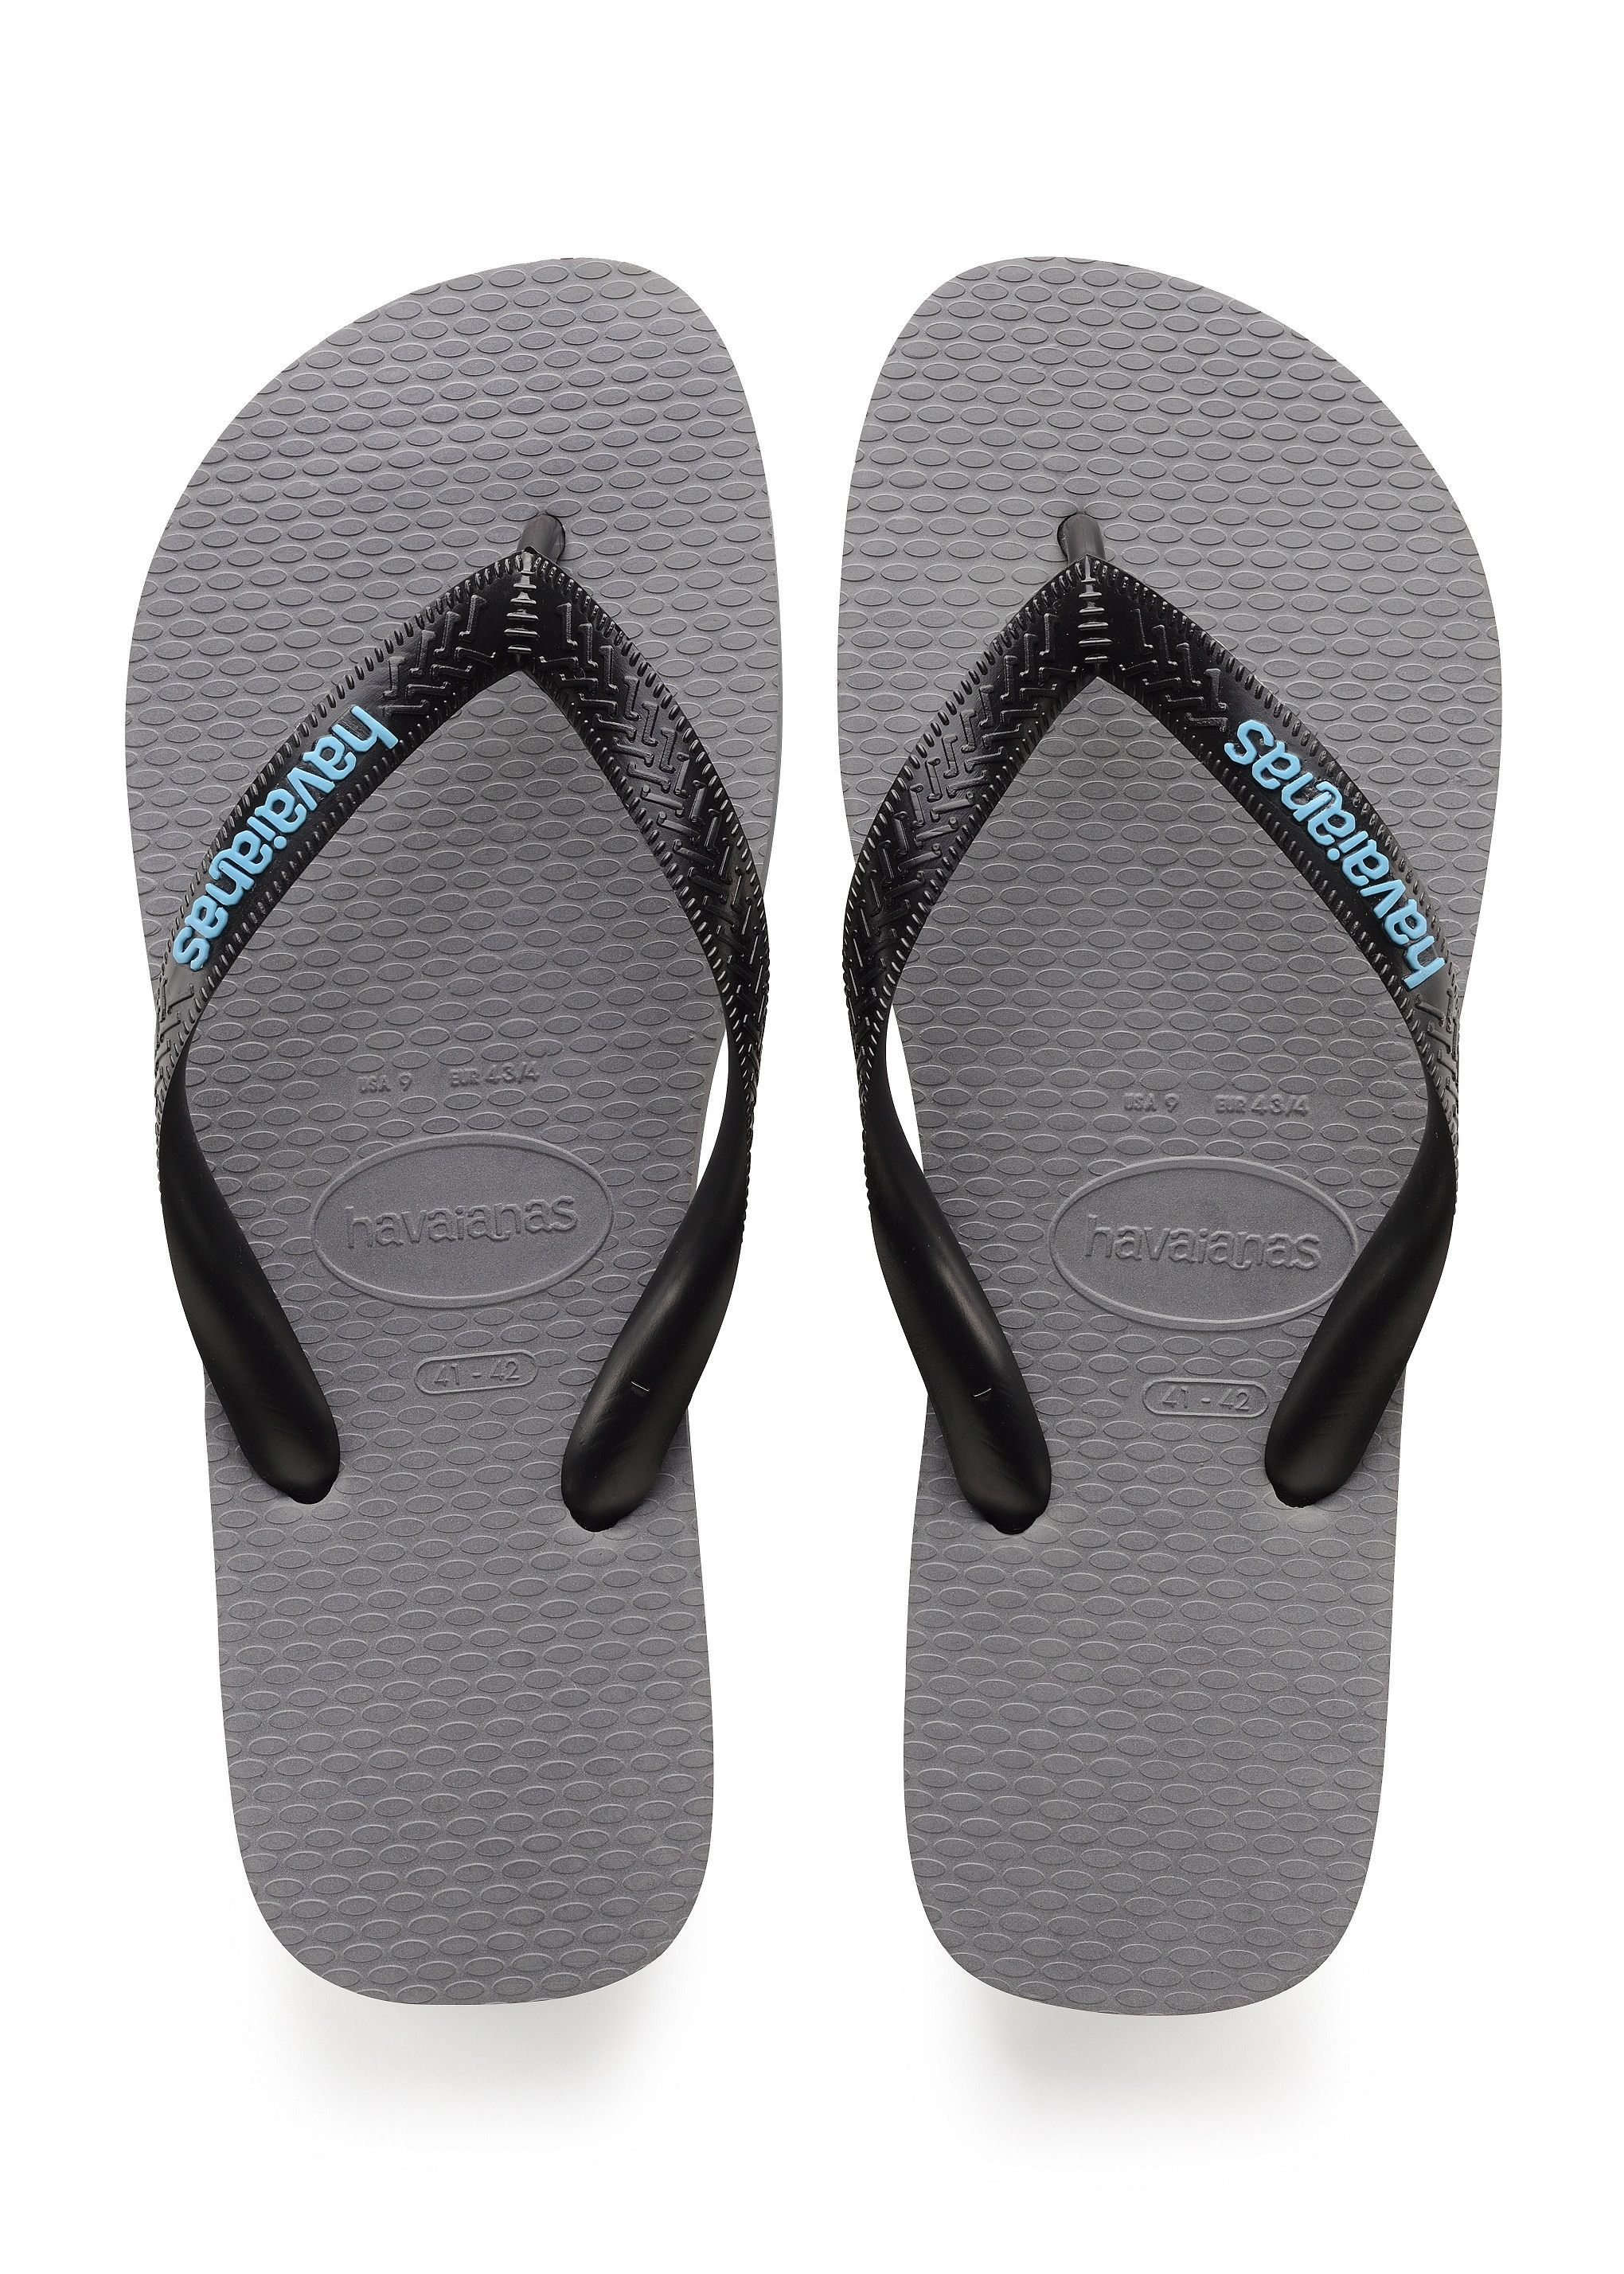 abad99e5f Havaianas Top Logo Filete Sandal Steel Grey Price From  £19.36